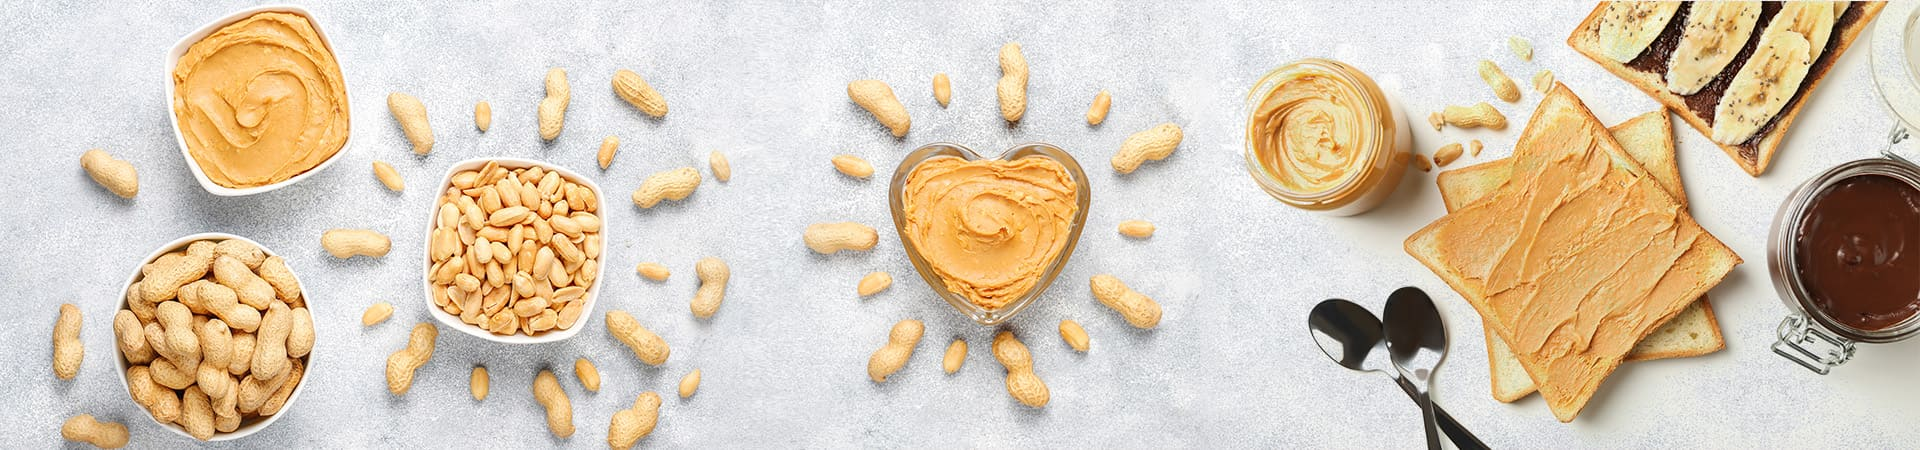 Nuts and Peanut Butter Manufacturing